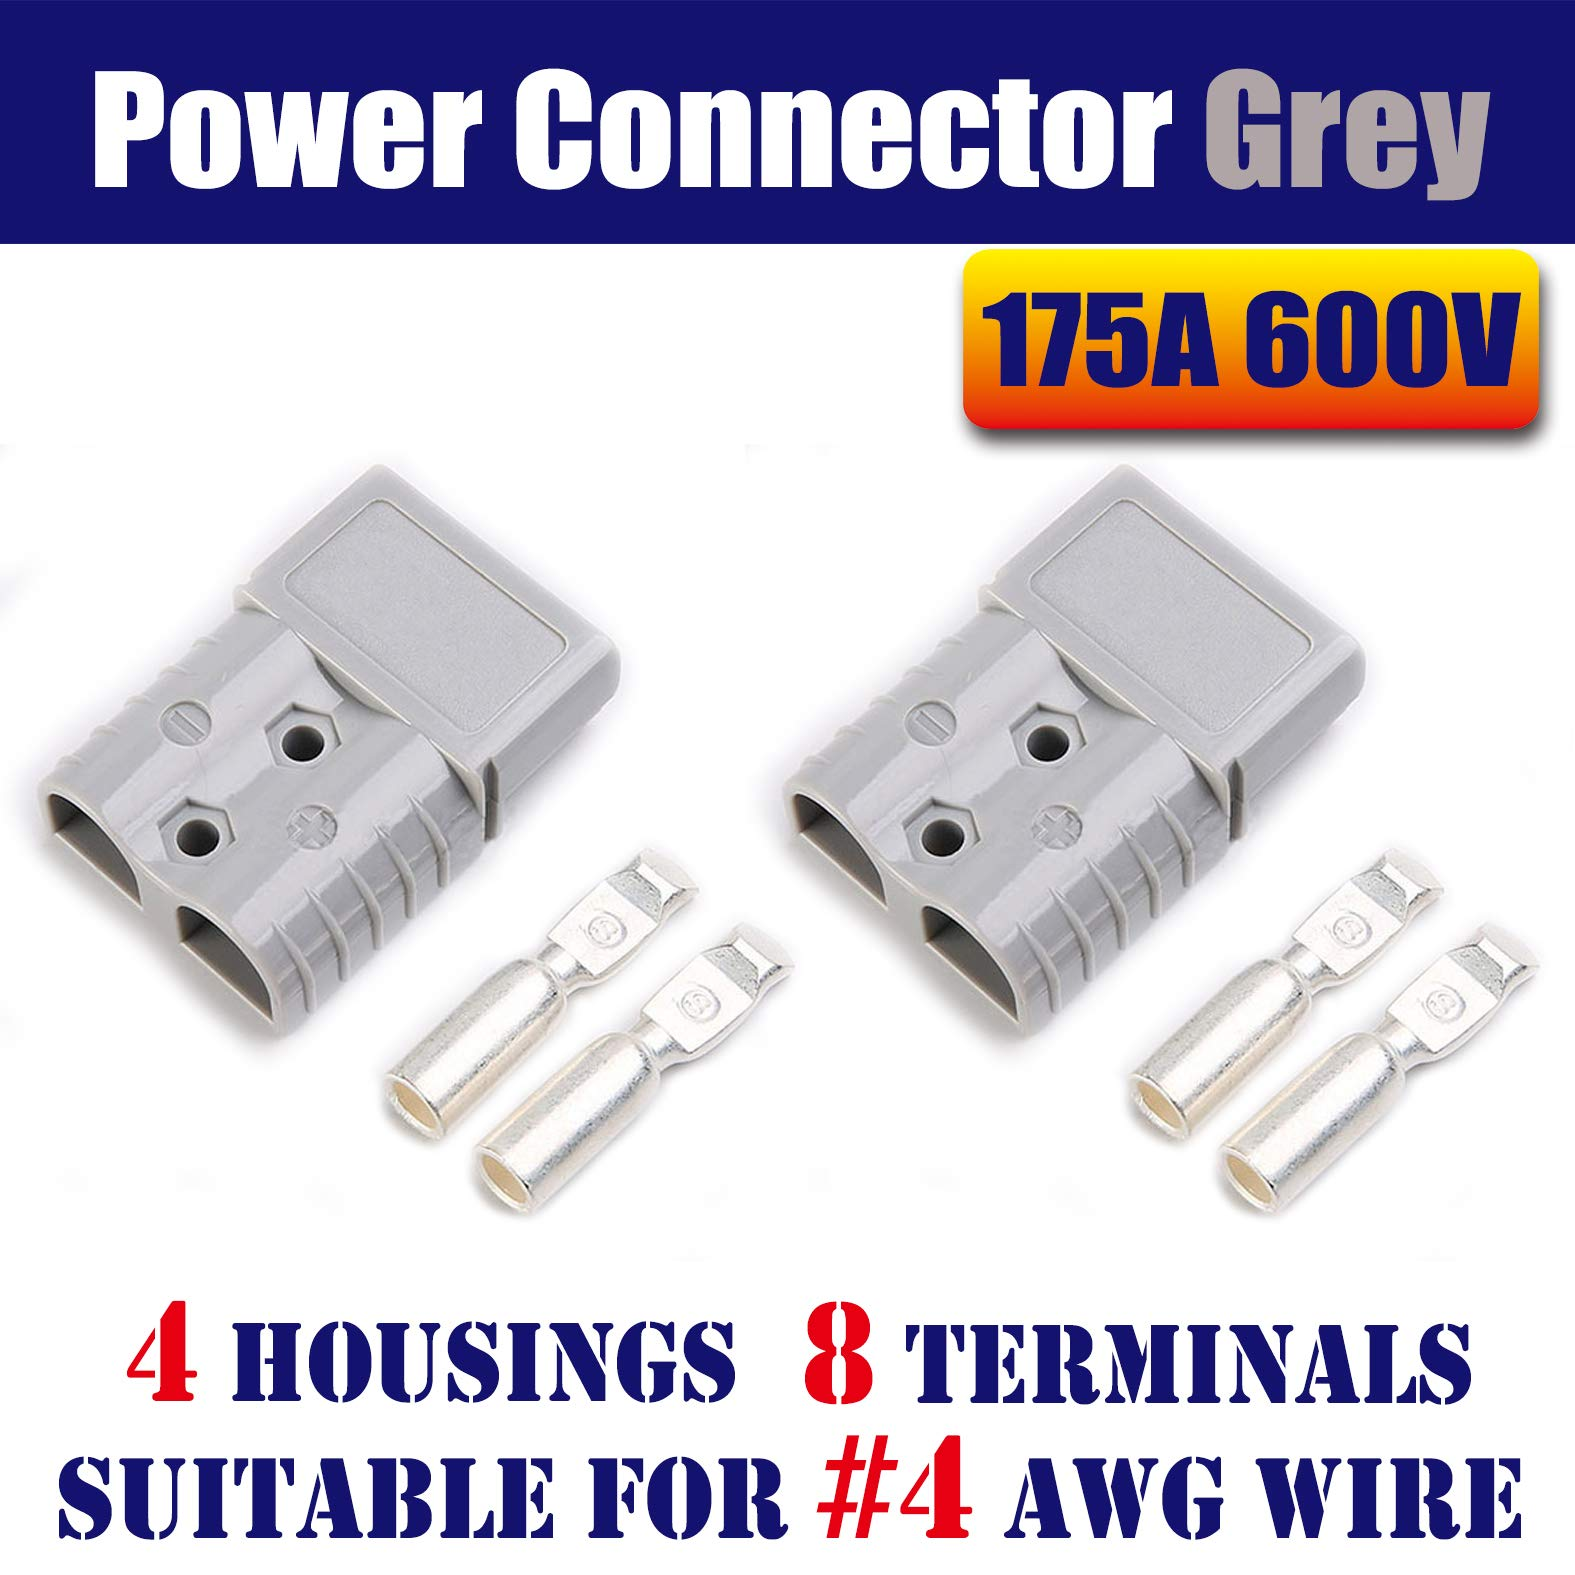 Mr.Brighton LED 175Amp Anderson Compatible 2 Pole Power Connector Plug Grey w/Terminals for #4 AWG Wire[4 housing+8 Terminal pins] by Mr.Brighton LED